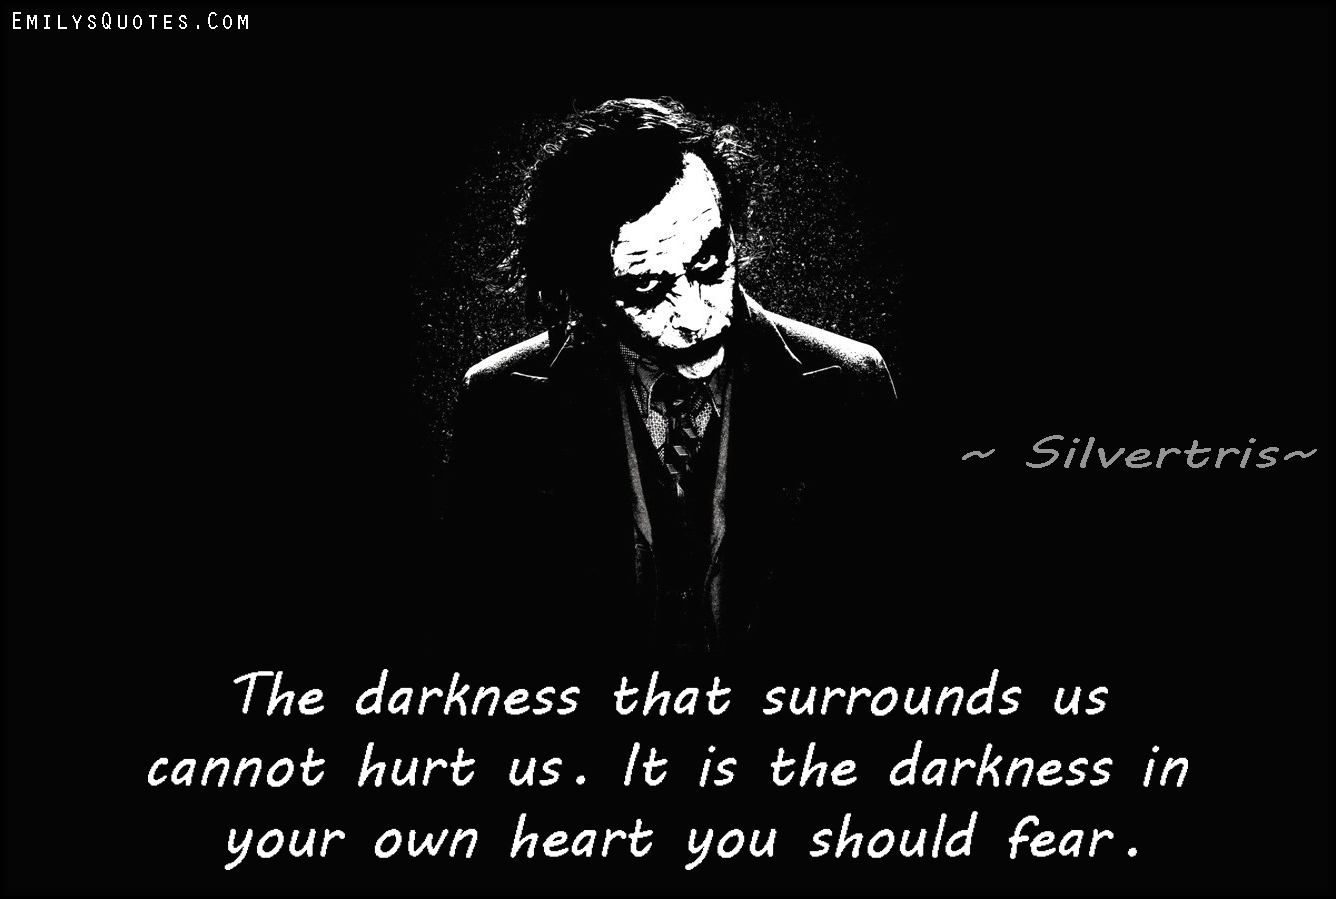 EmilysQuotes.Com - darkness, negative, hurt, heart, fear, truth,  Silvertris